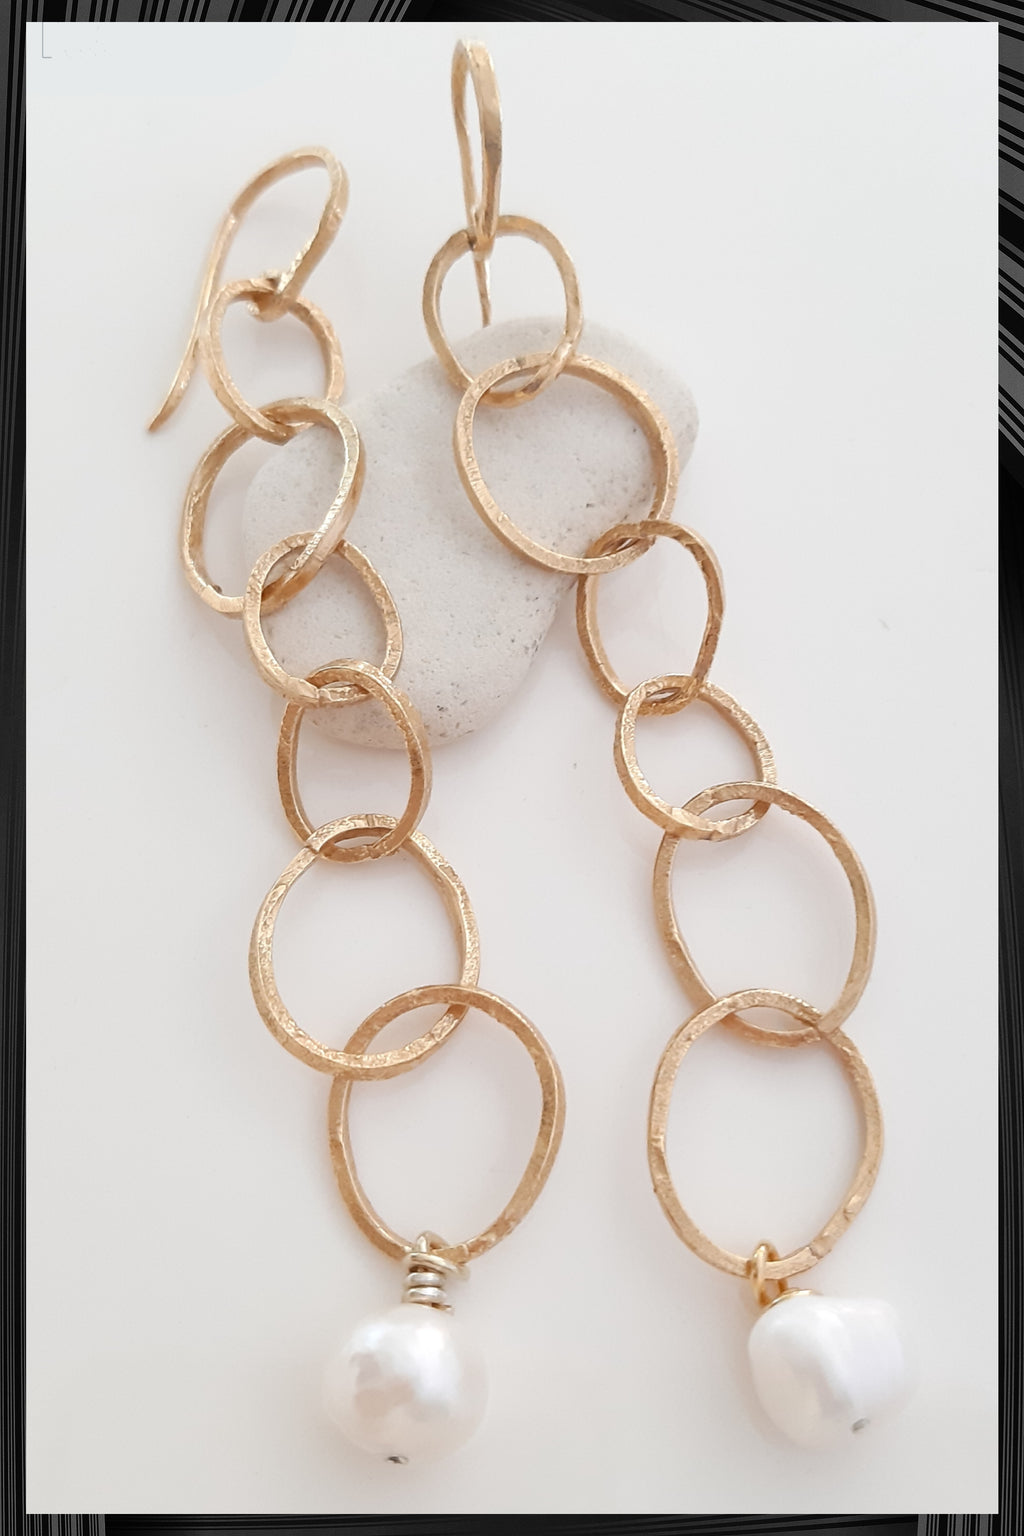 Dunes Chain Earrings | Free Delivery - Quick Shipping